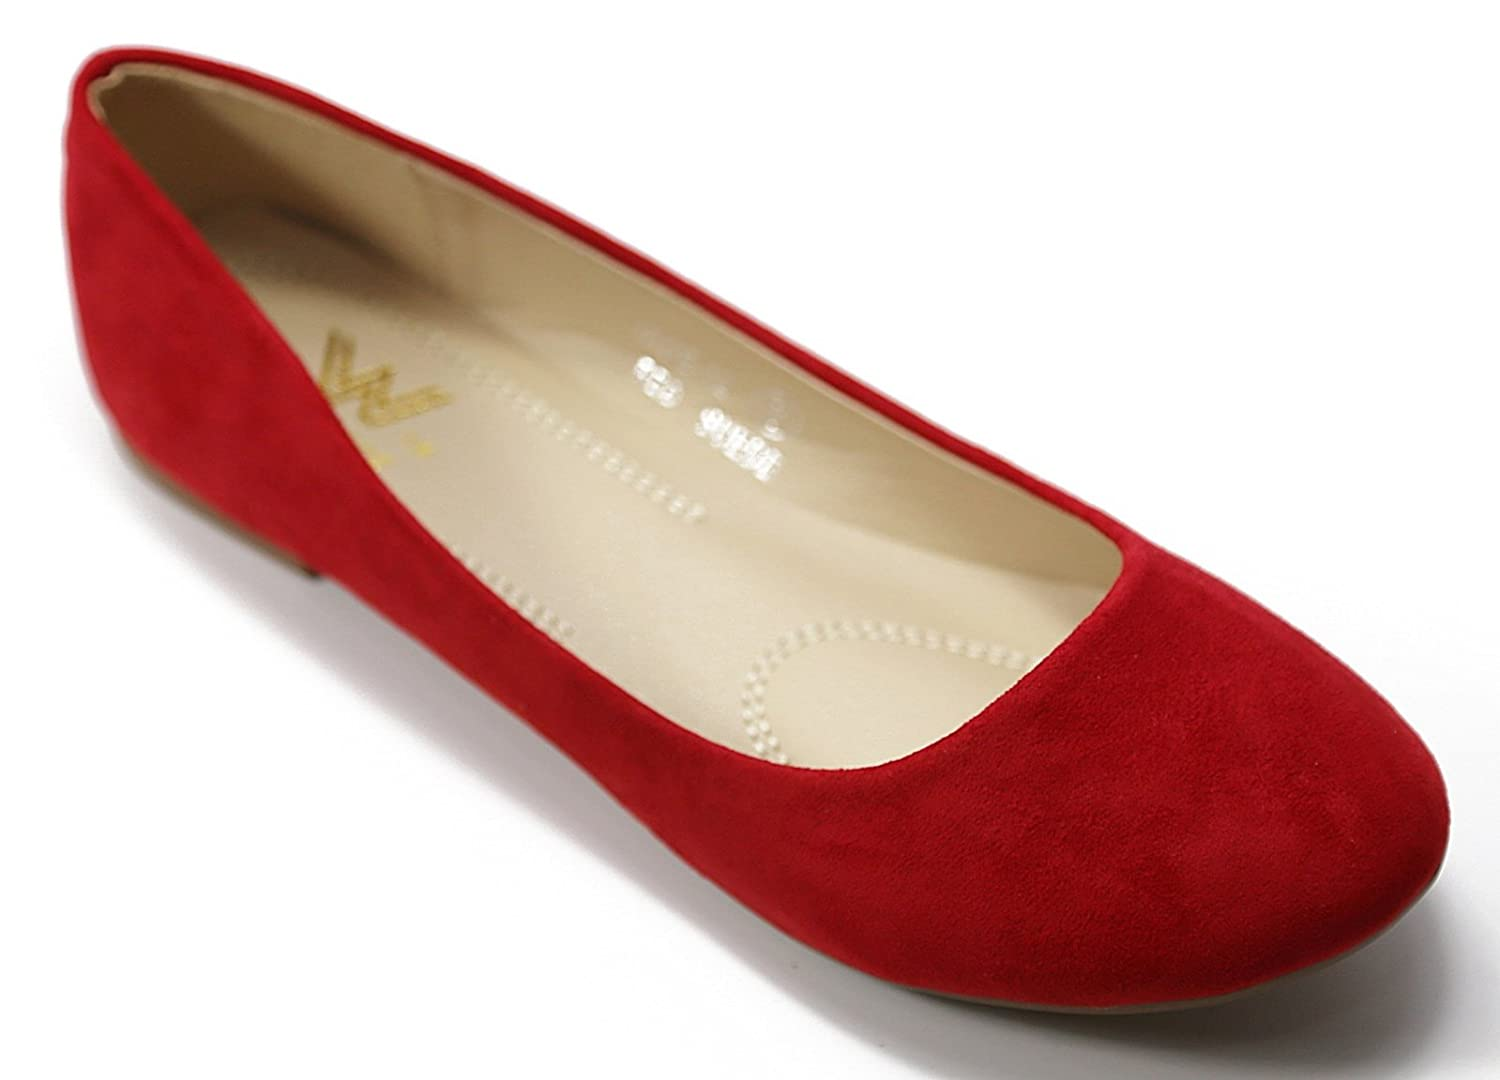 Walstar Women's Basic Round Toe Ballet Flat Shoes B015YJ6DUM 6 B (Run Small, Order 1/2 size UP)|Red Suede